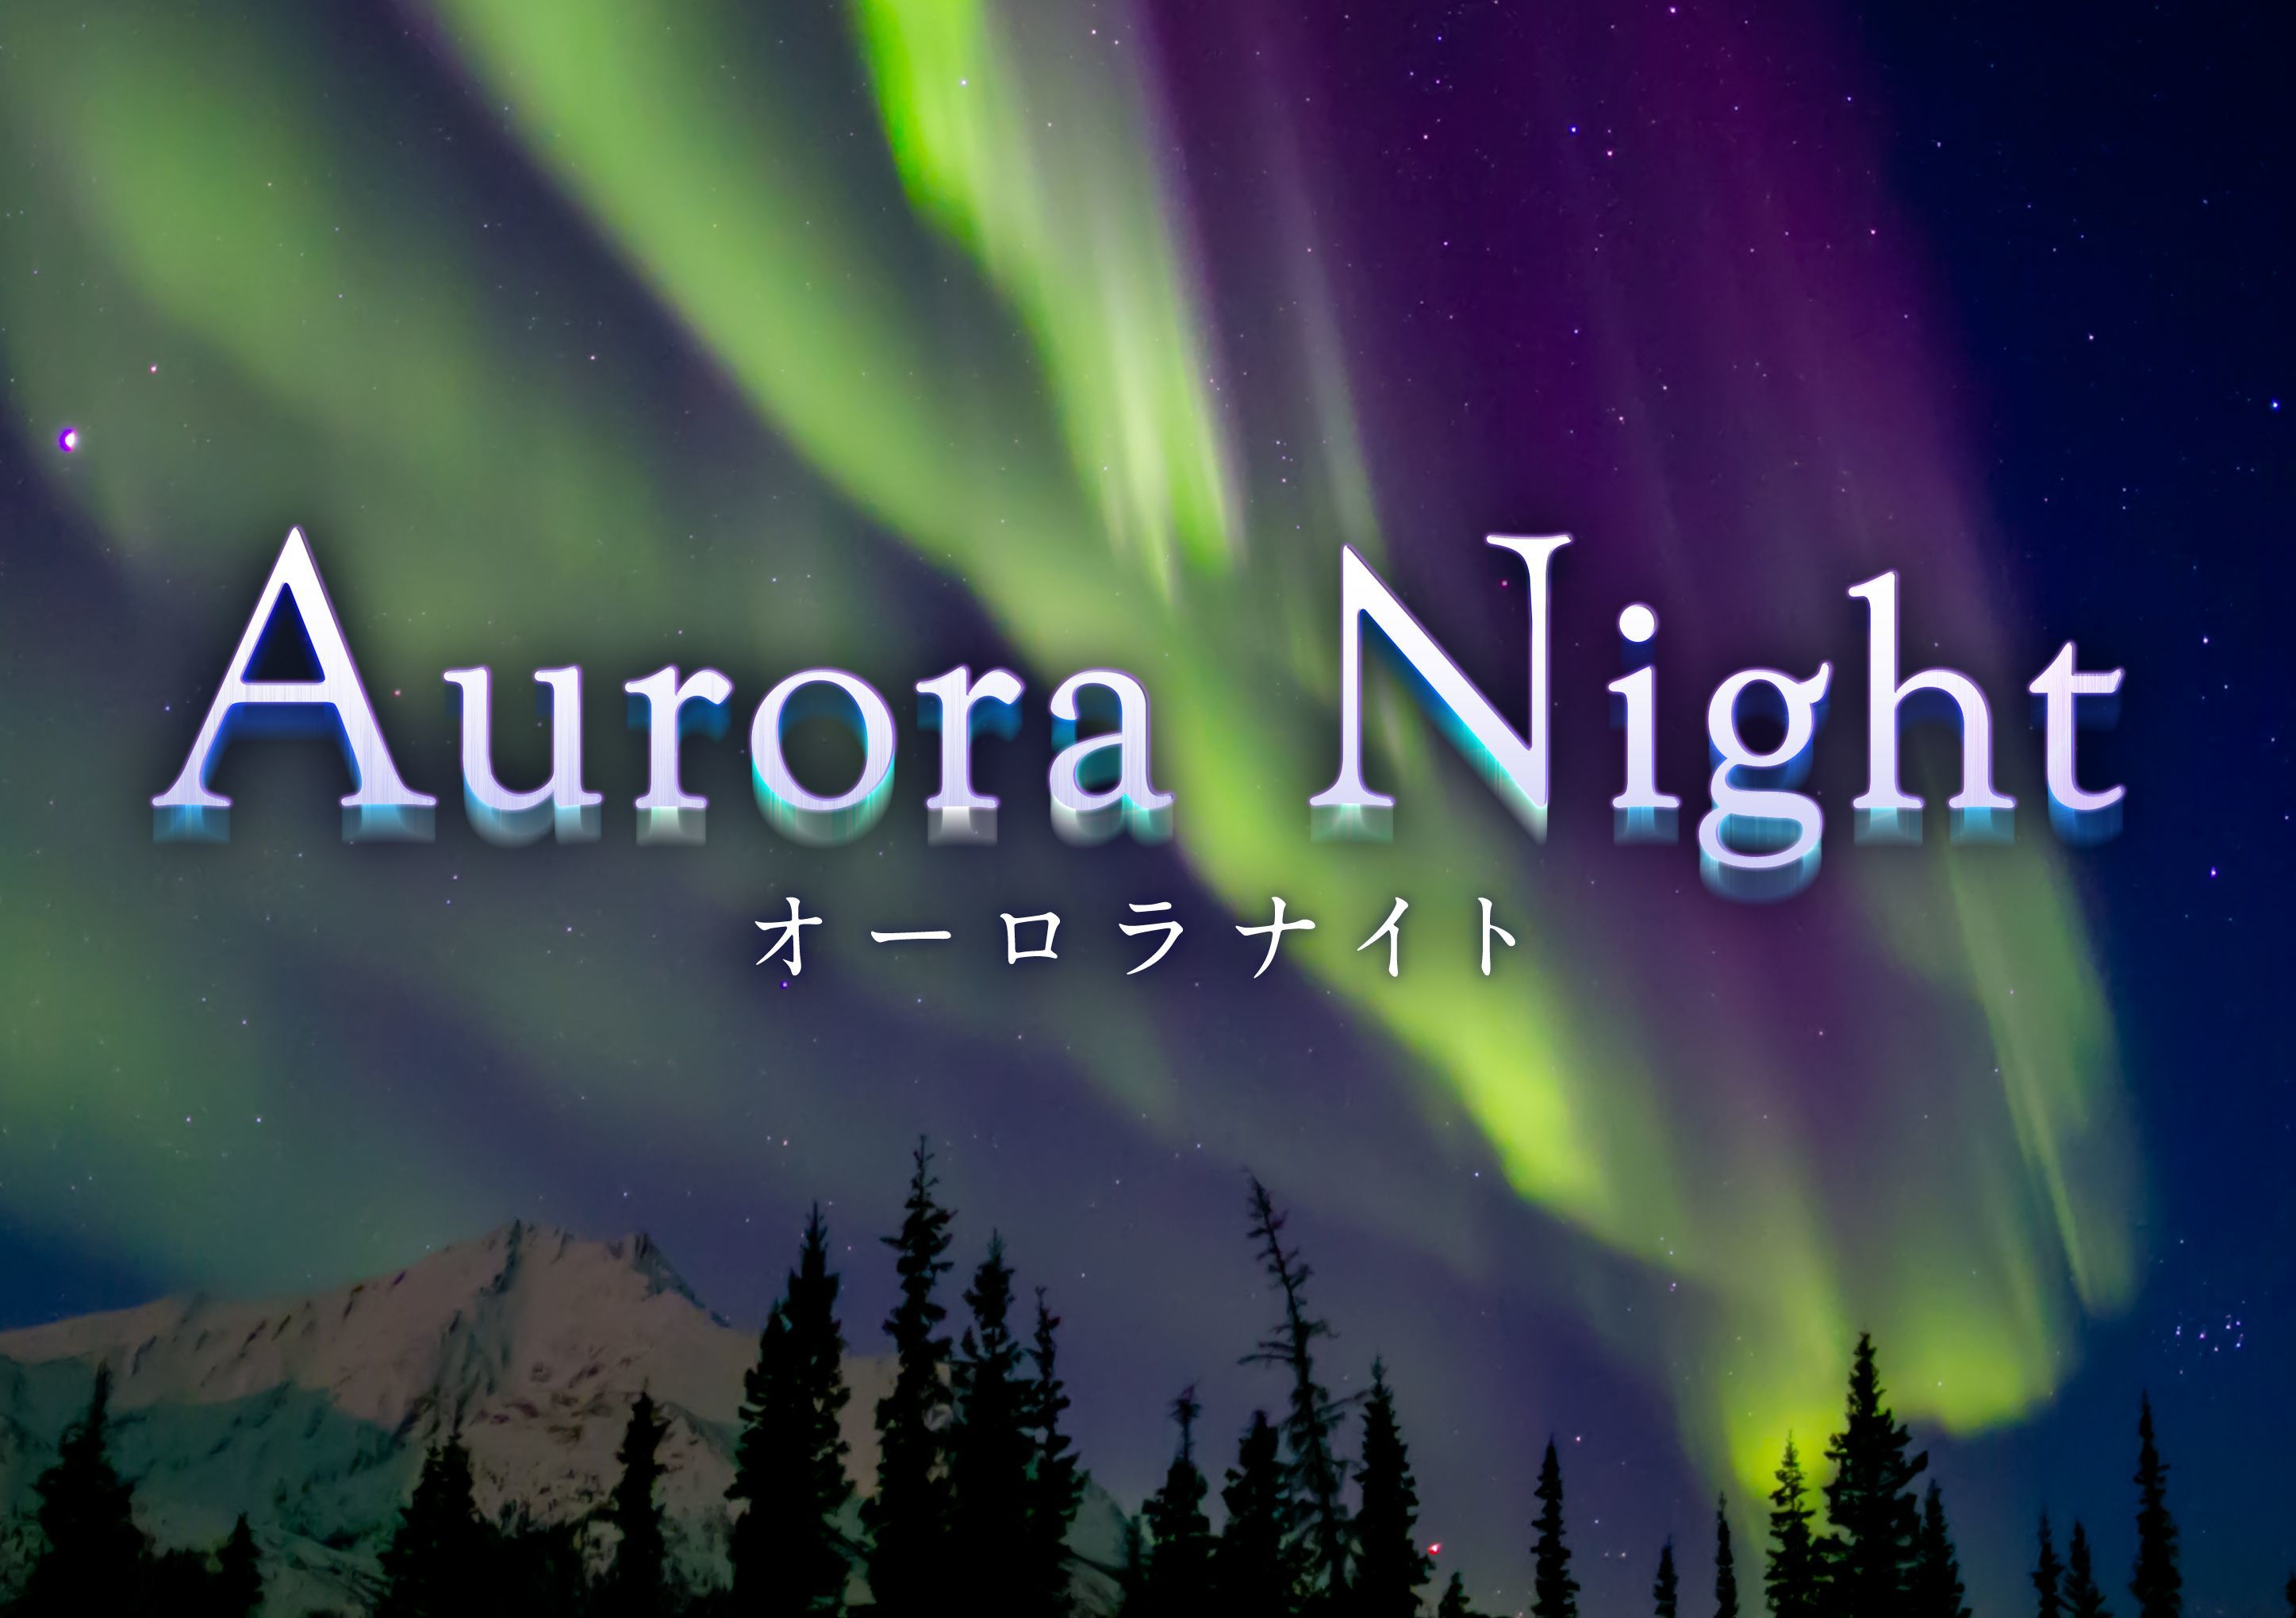 『Aurora Night』